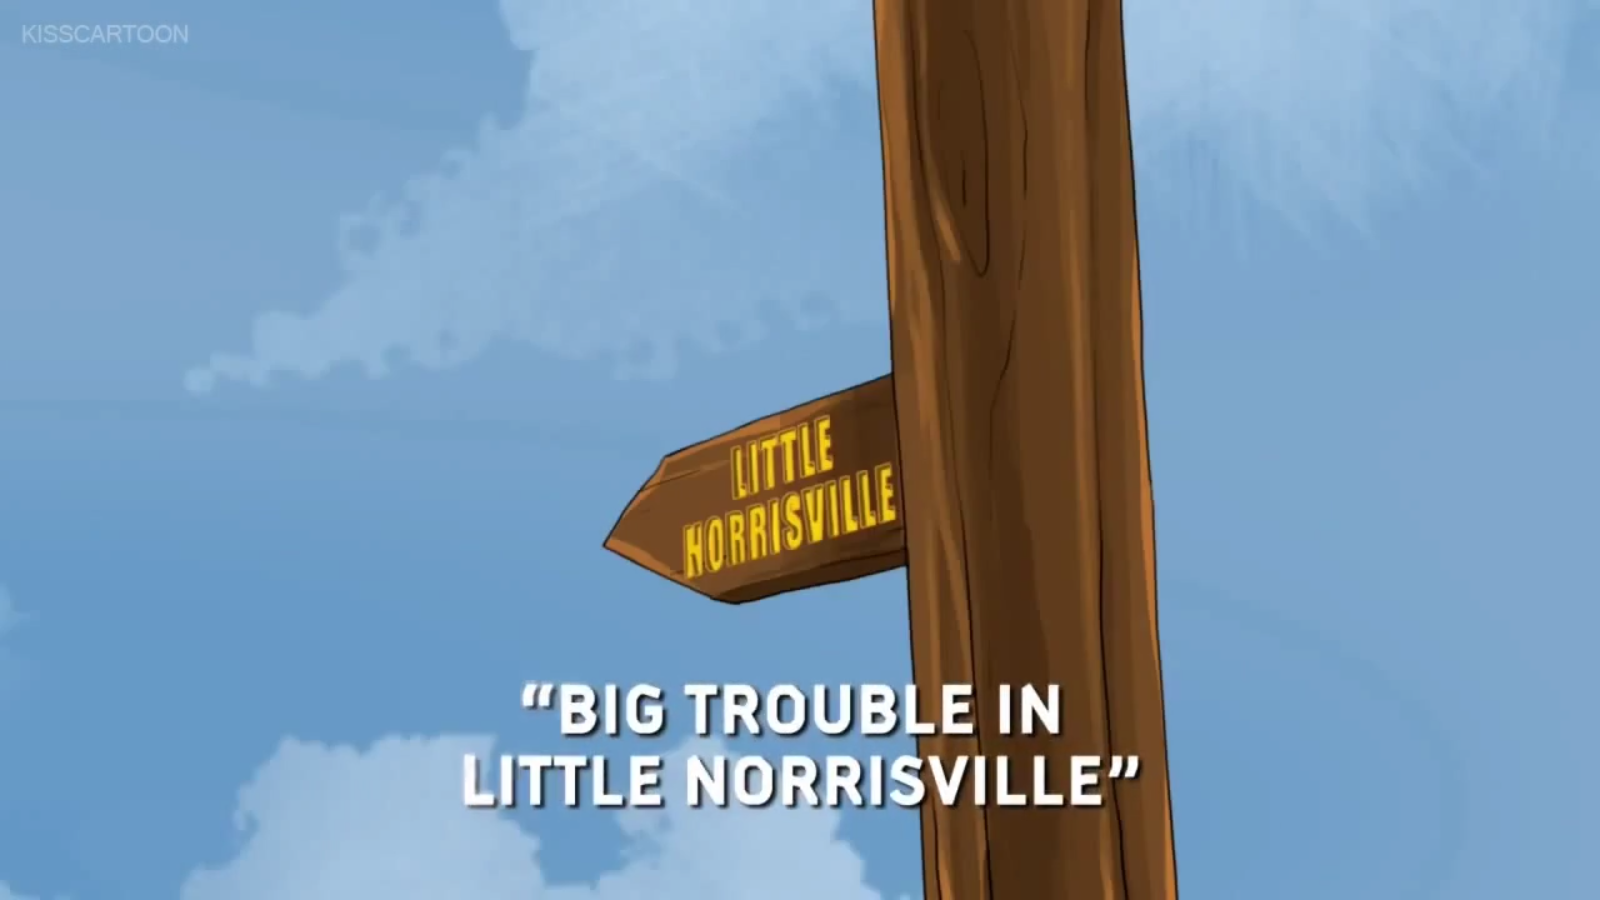 Big Trouble in Little Norrisville